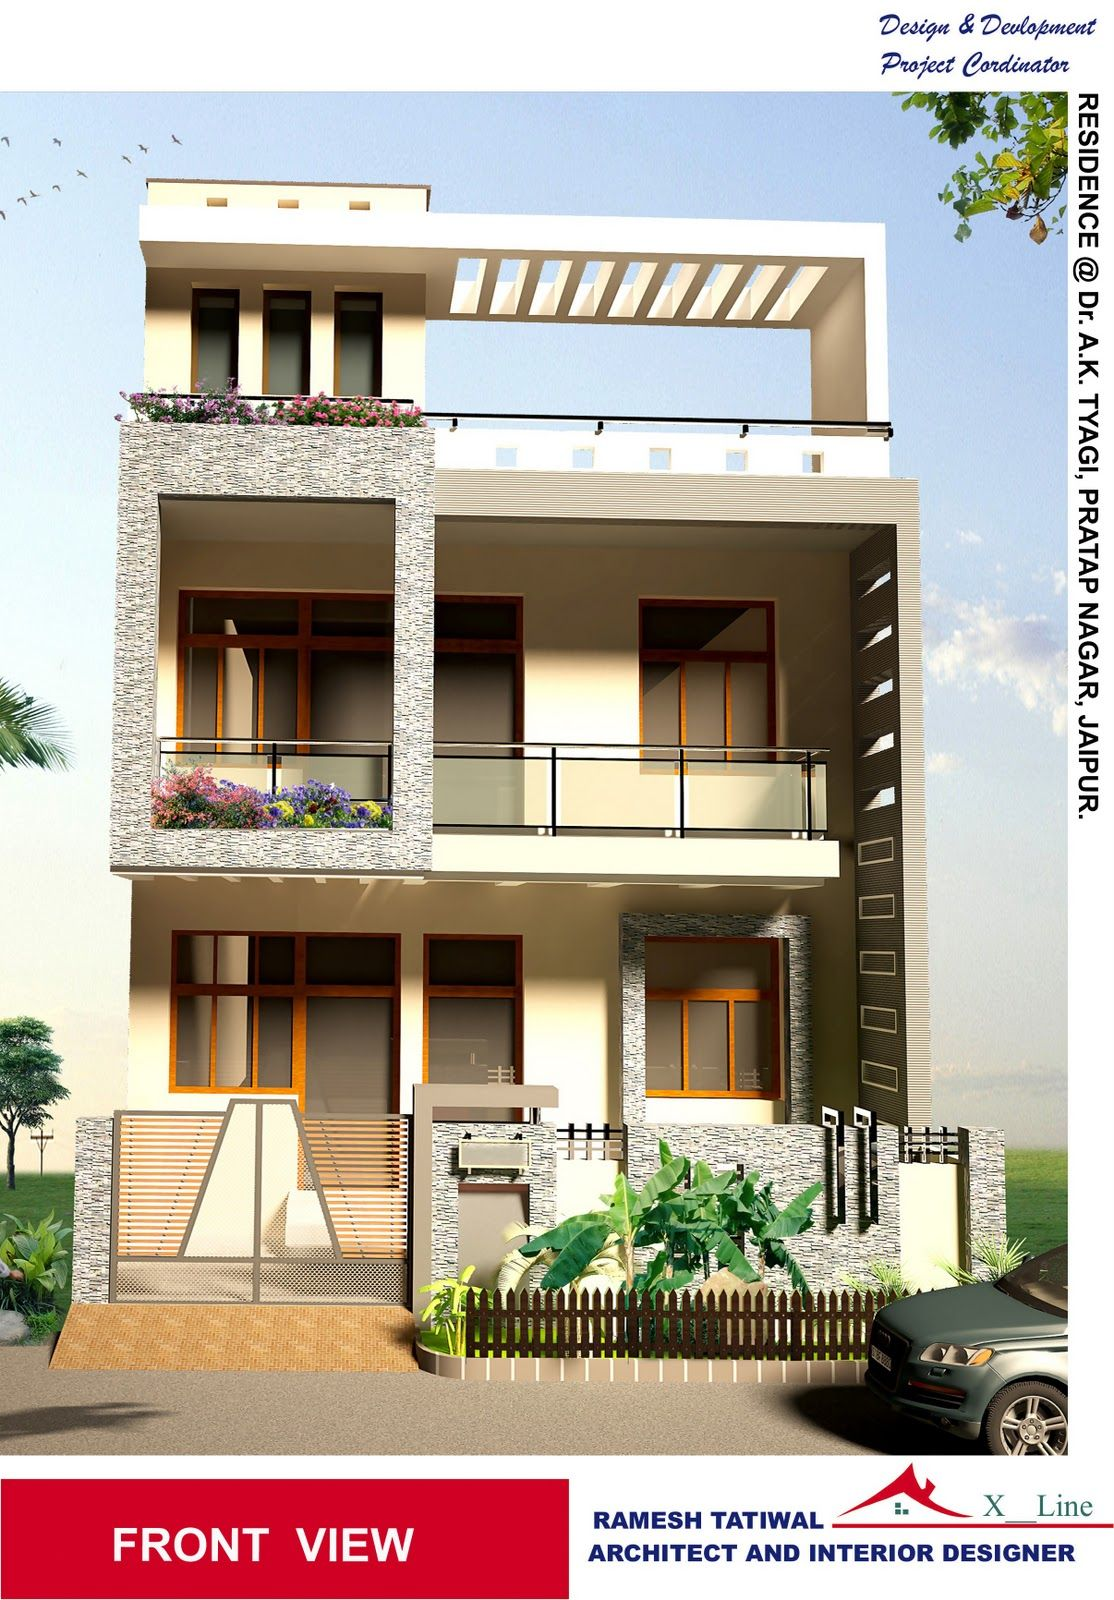 Glory Architecture : 25x50 house elevation, islamabad house elevation, ...  | House Elevation 3D Elevation 3D home view | Pinterest | House elevation,  ...